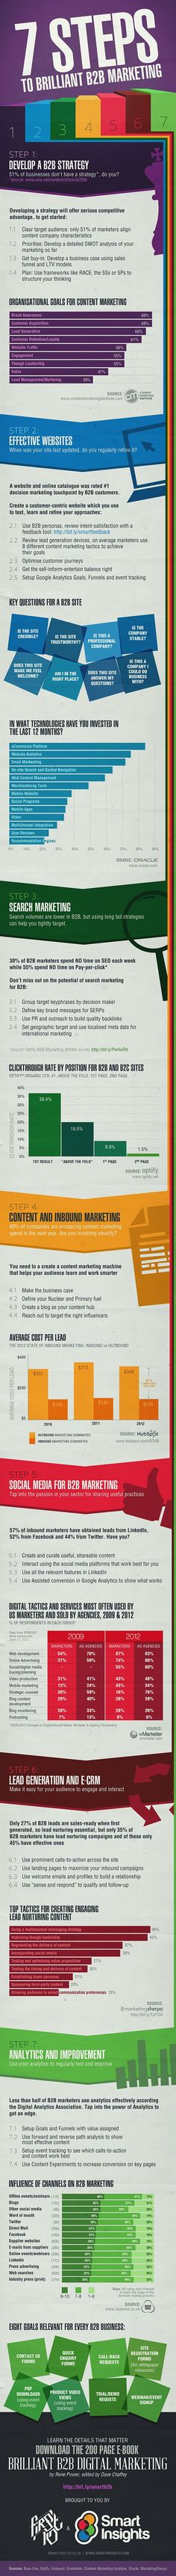 B2B marketing is essential for any online business, this infographic guide will help you in creating your next strategy with 7 brilliant steps.